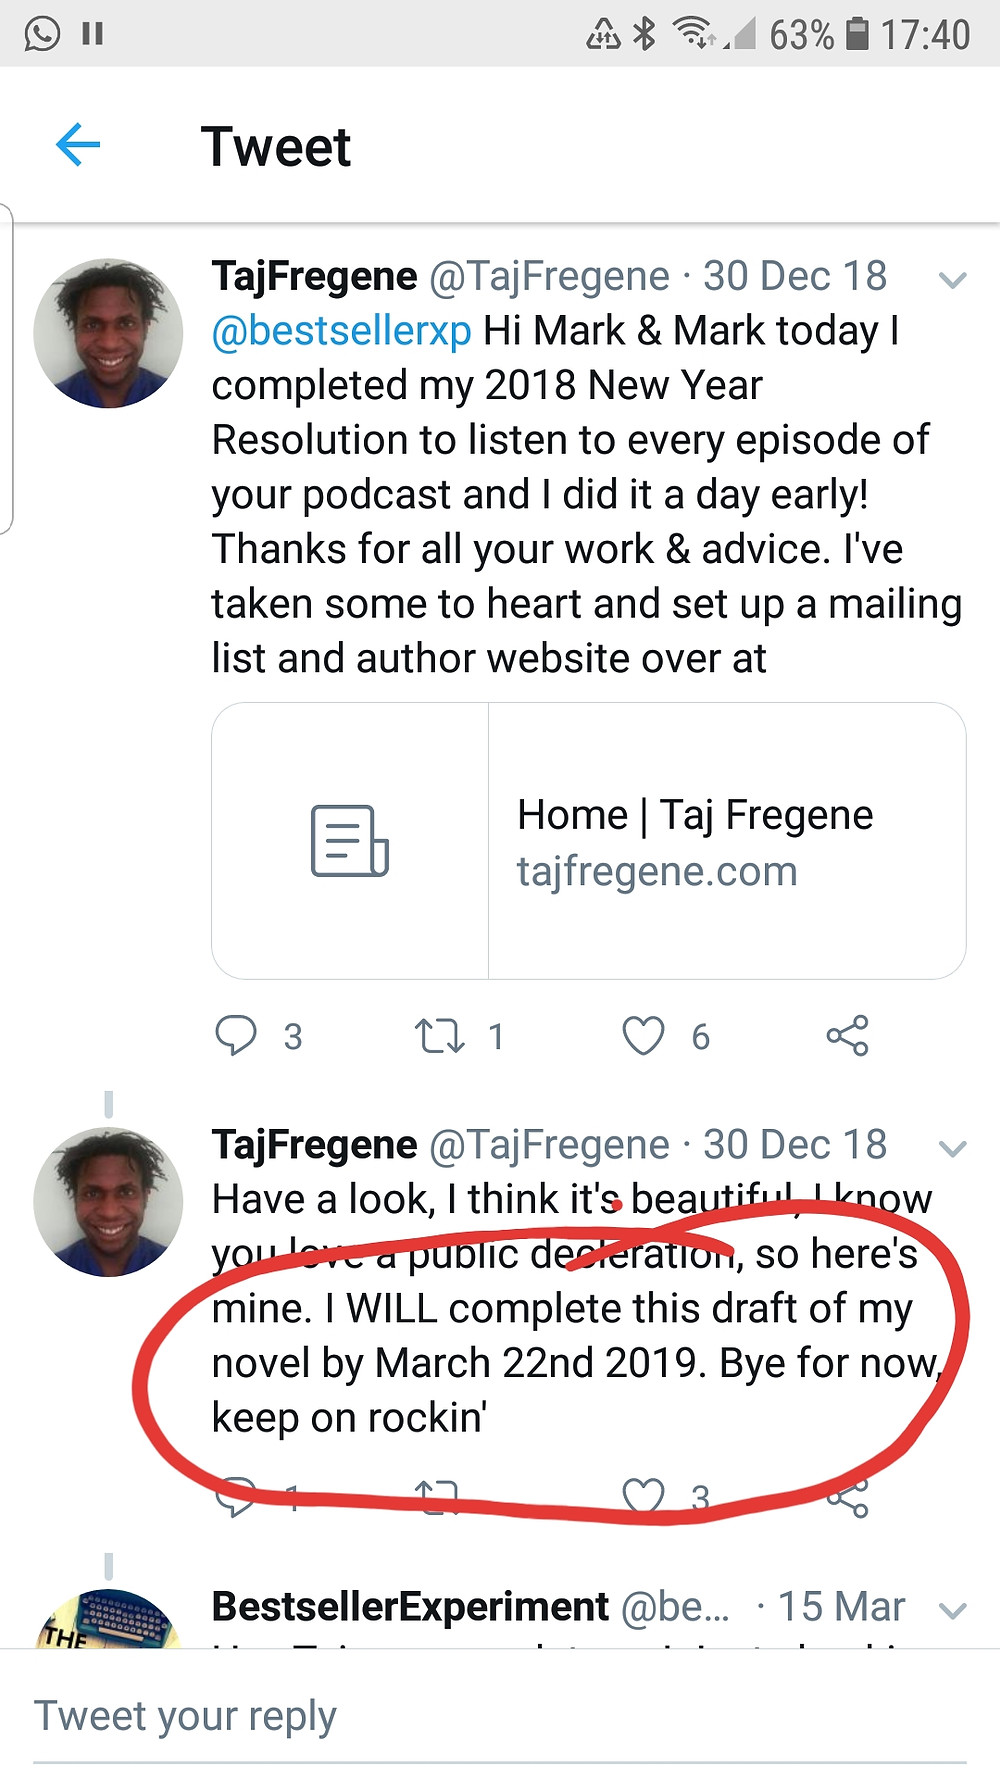 Screengrab of Taj Fregene's twitter feed in which he states that his will complete his book, All of our Tomorrows, by 22nd March 2019